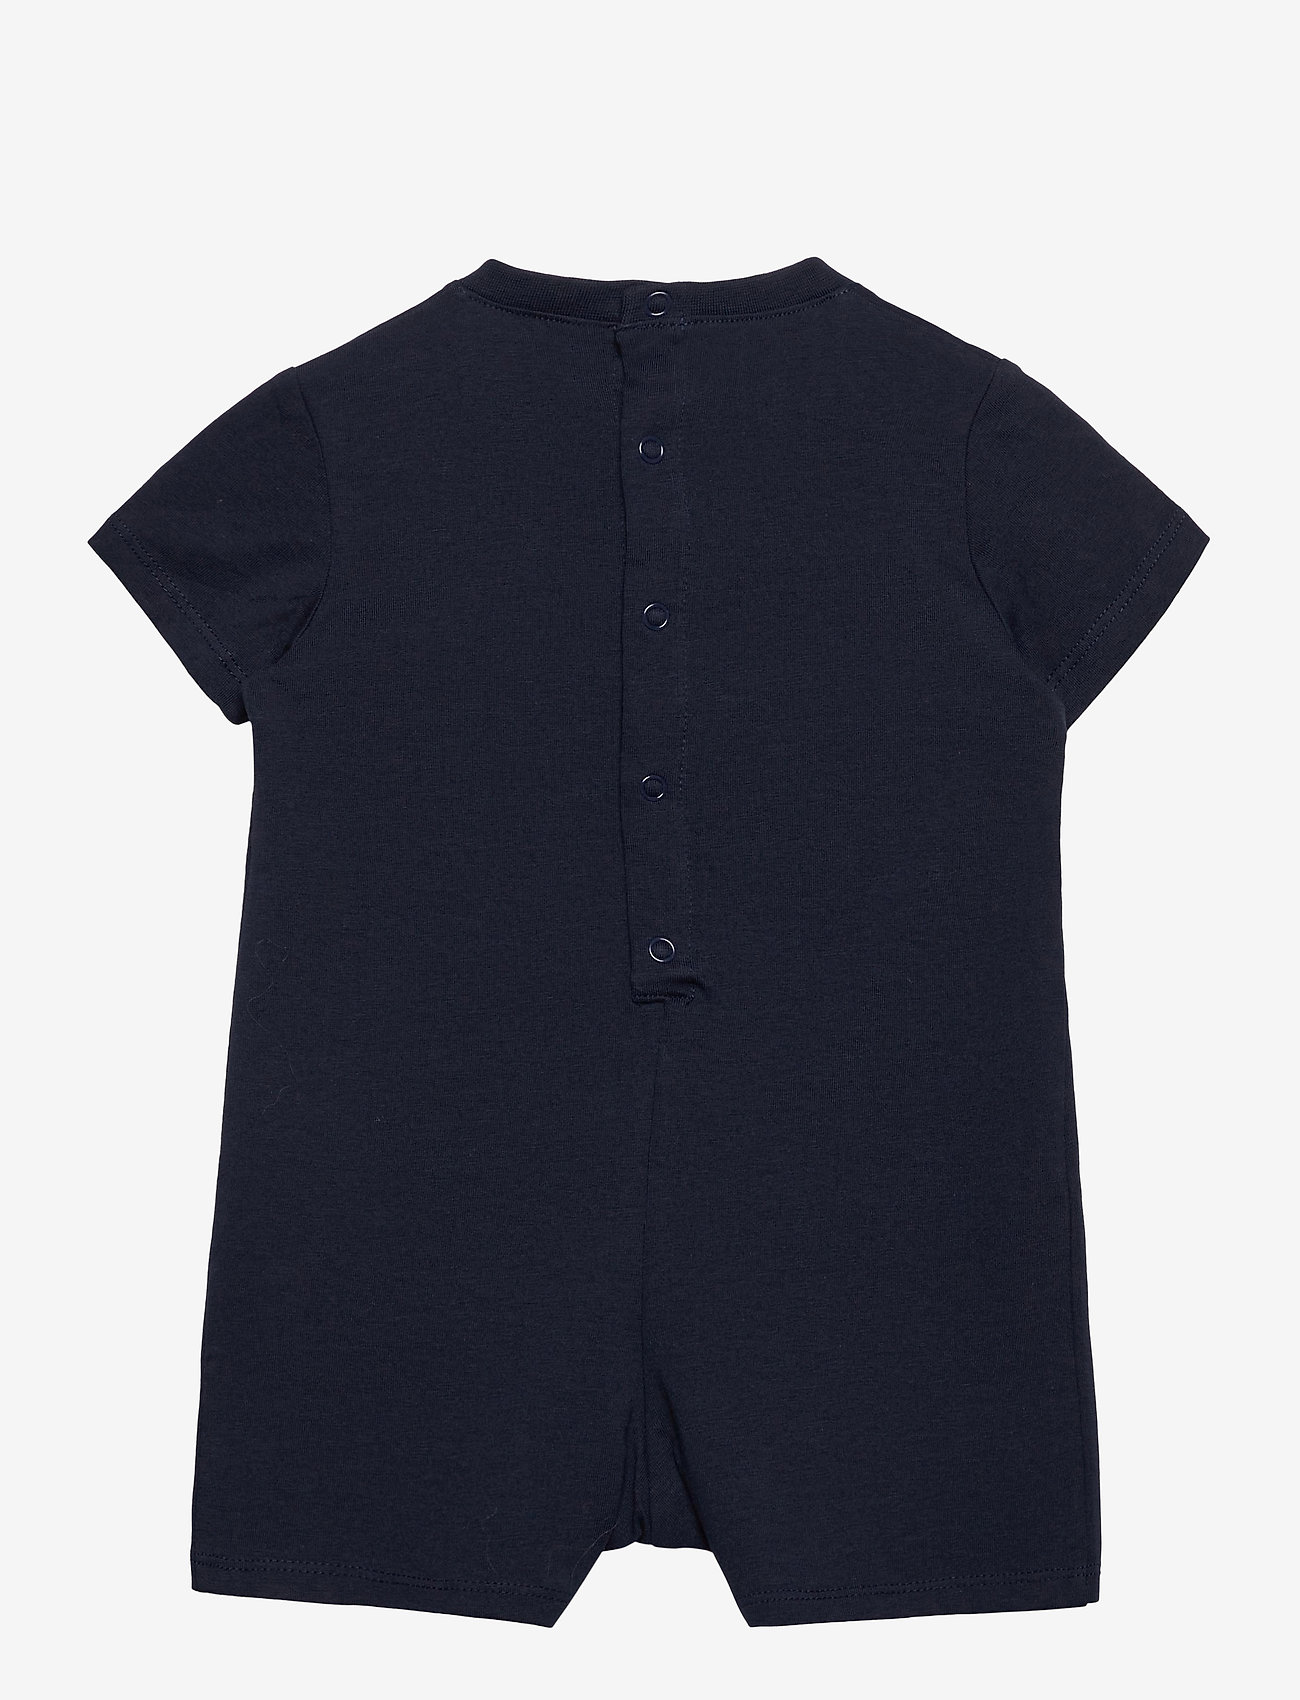 BOSS - SHORT ALL IN ONE - kurzärmelig - navy - 1